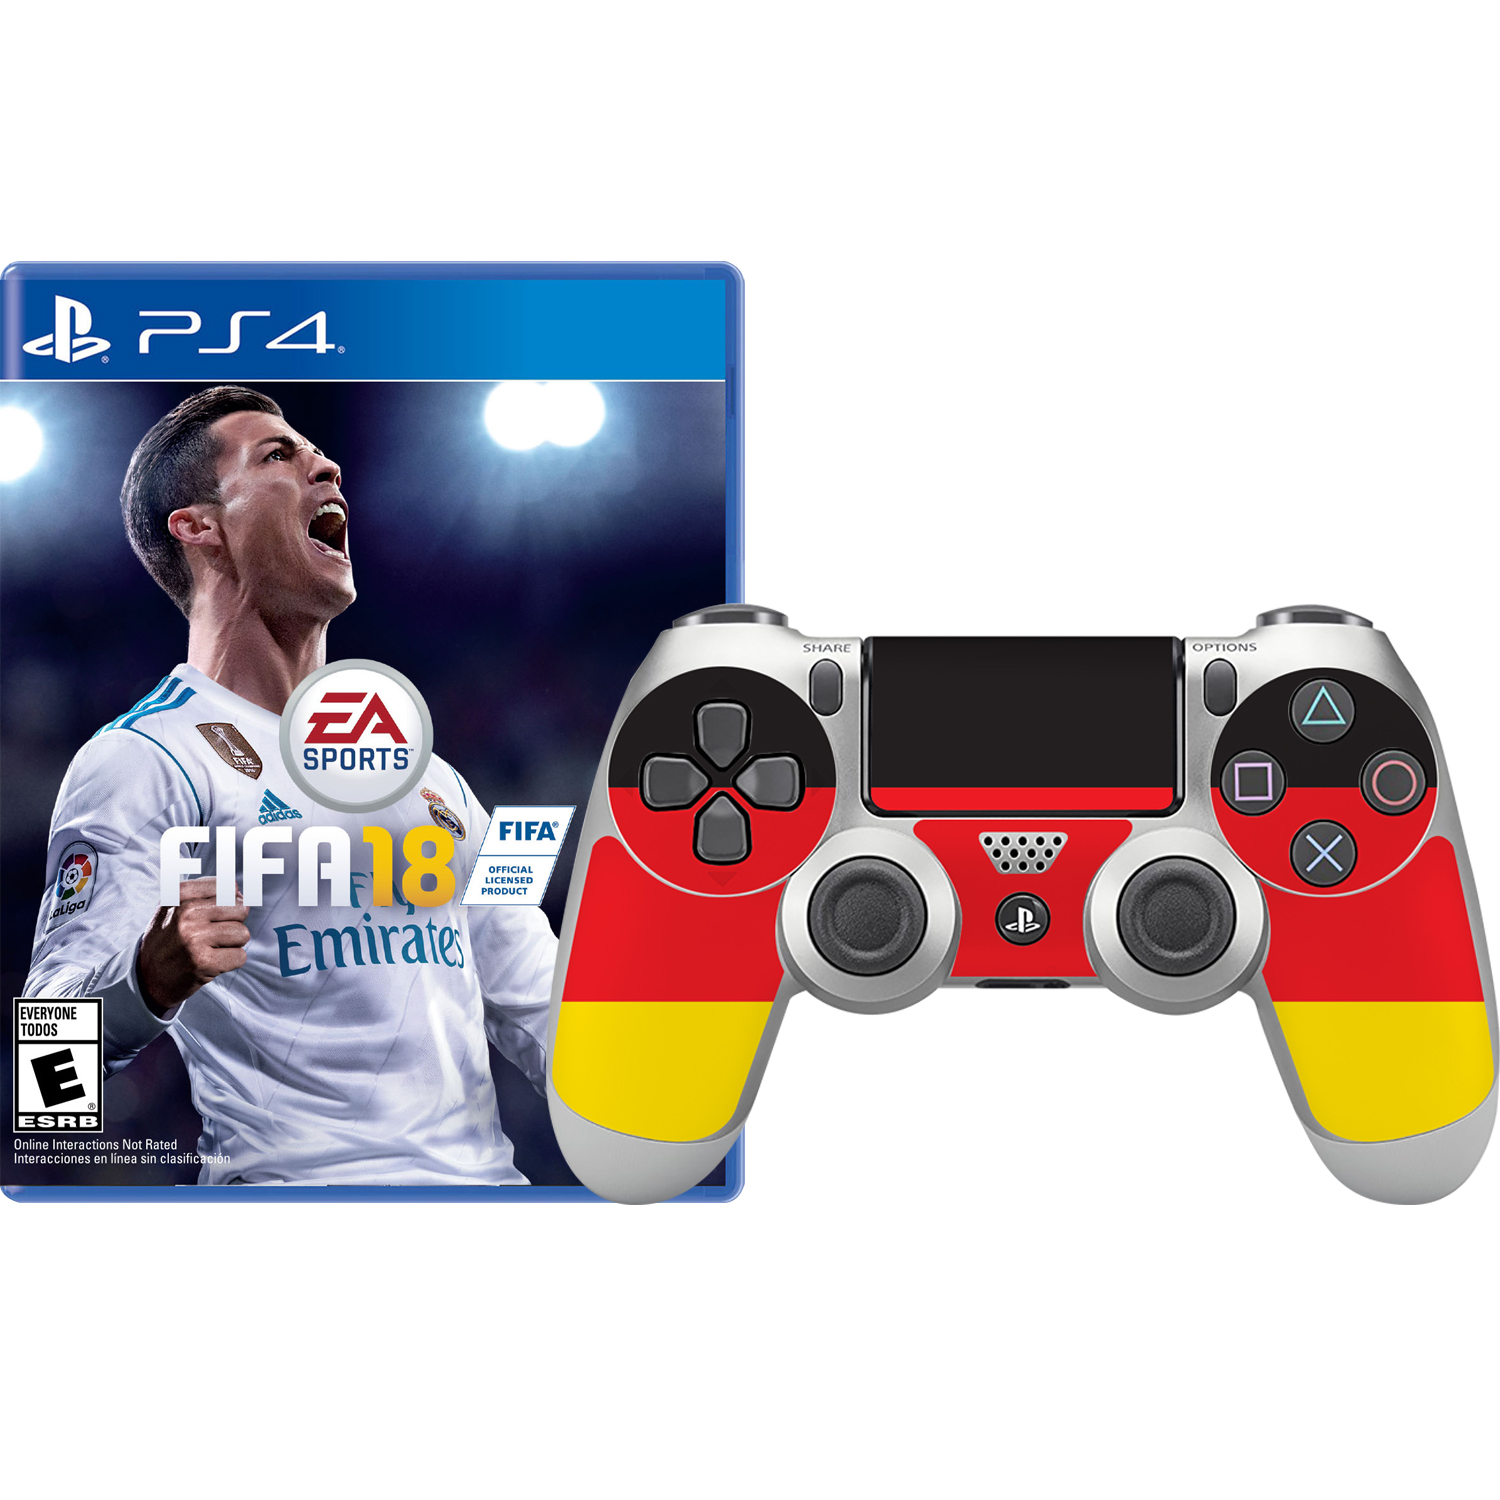 FIFA 18 and Germany Skin Controller, Electronic Arts, PlayStation 4, 696055184934